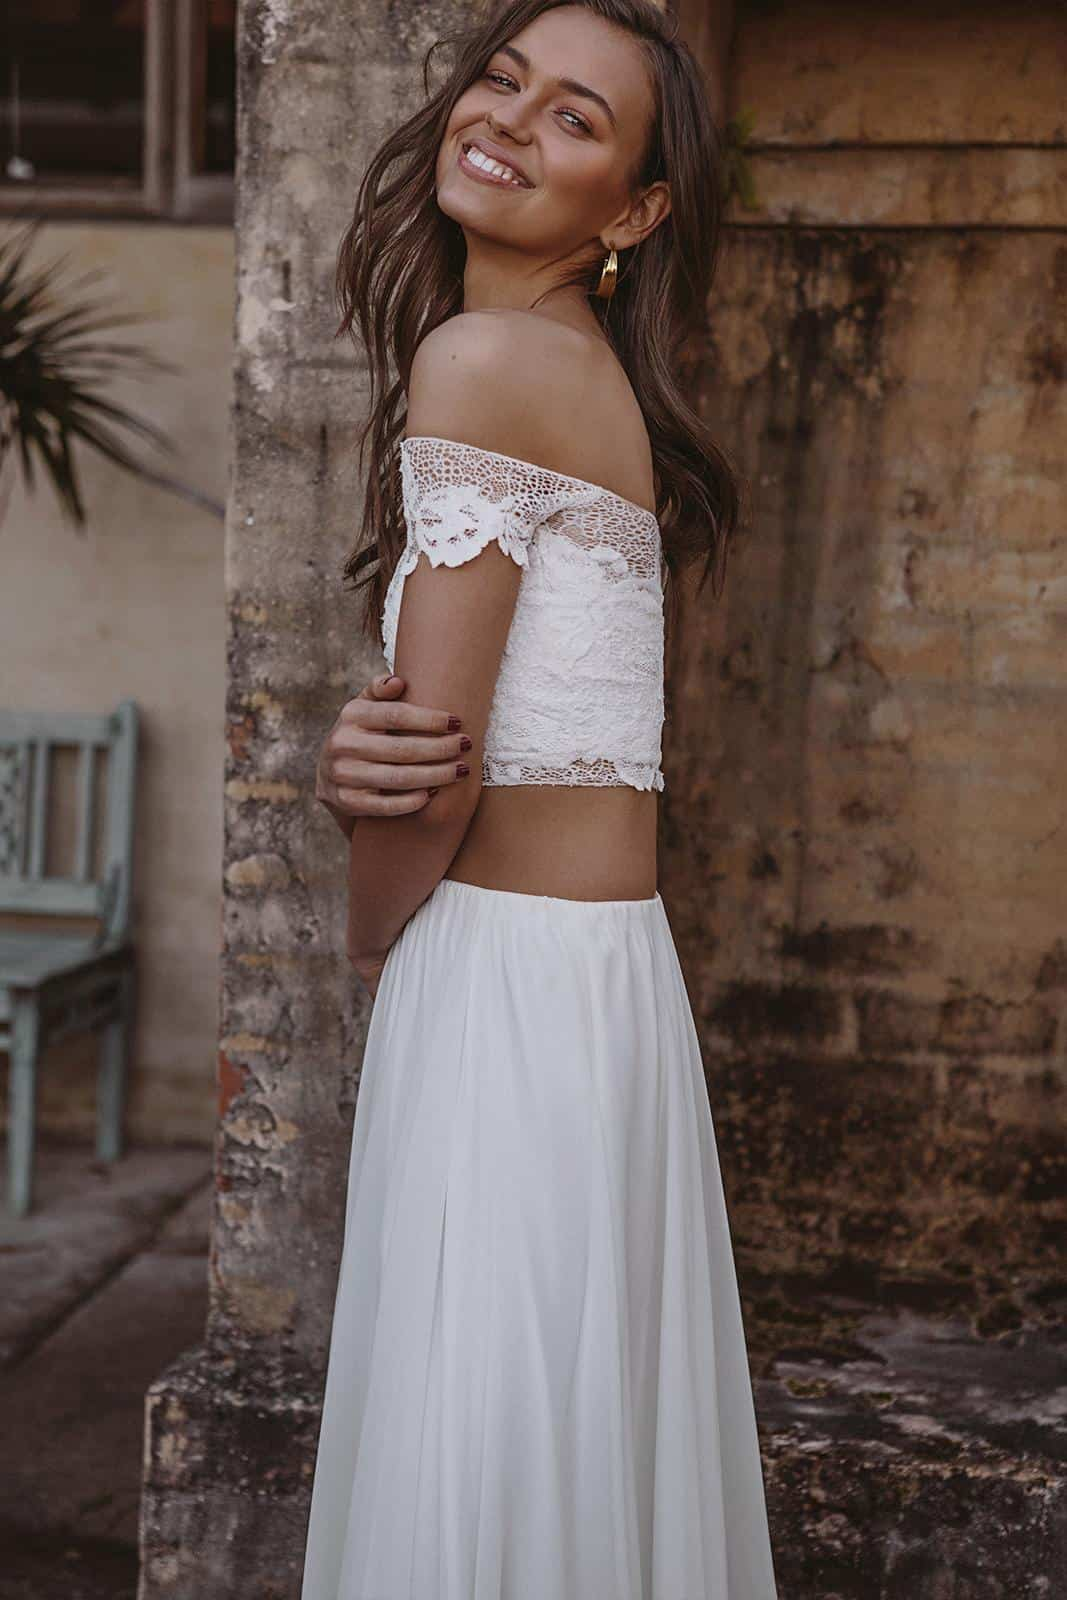 Bohemian Crop Top Silk Chiffon Skirts Wedding Dresses Inspiration French Lace Bridal Gowns Handmade by Grace Loves Lace Valeria